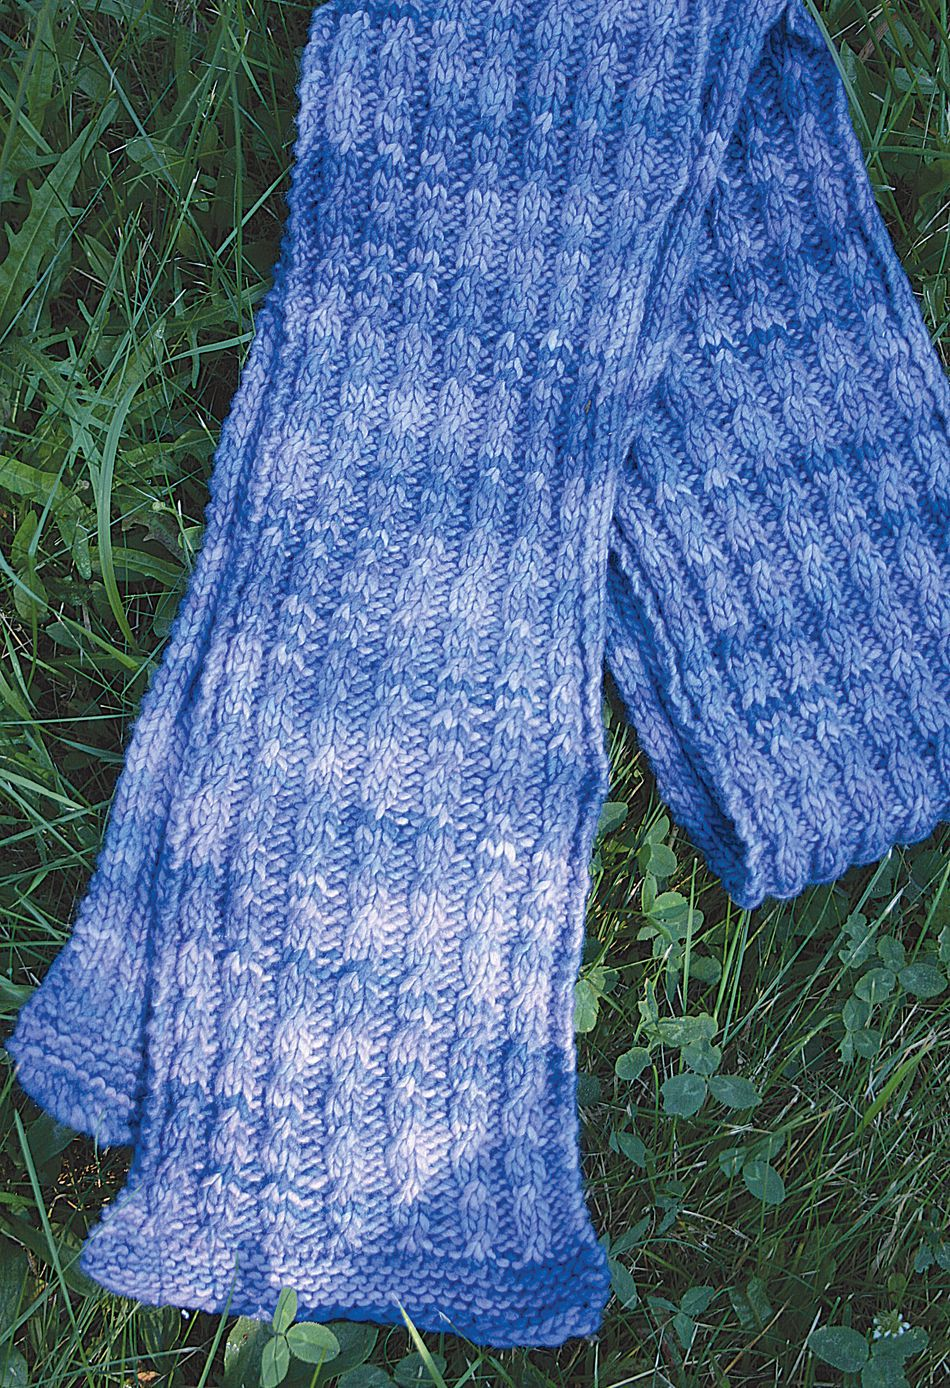 Our Patterns: Free with purchase, fun by design! Halcyon Yarn